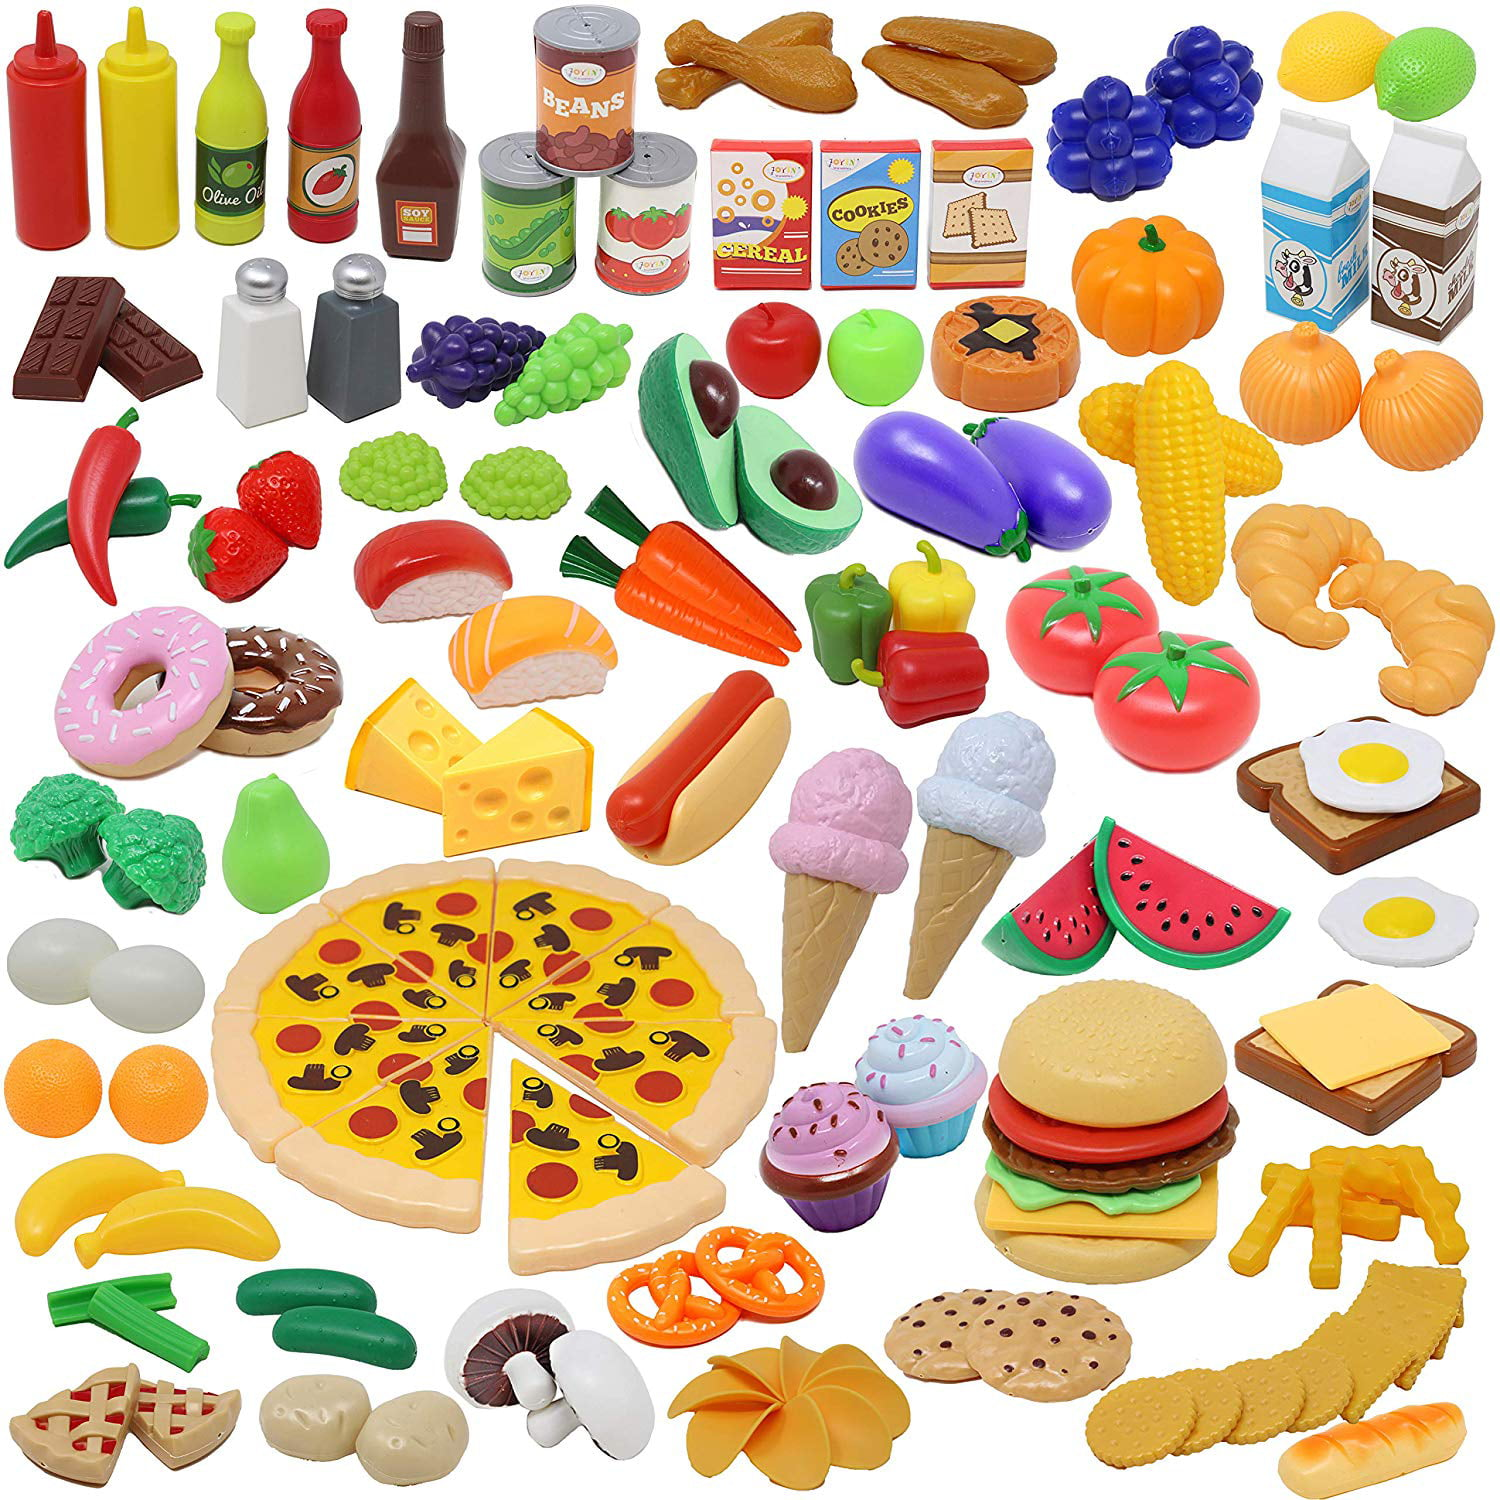 135 Pieces Play Kitchen Accessories Set Kids Toddlers Toys Play Food Set Market Educational Pretend Play Play Food Vegetables Kids Kitchen Playsets Toy Food For Kids Walmart Com Walmart Com